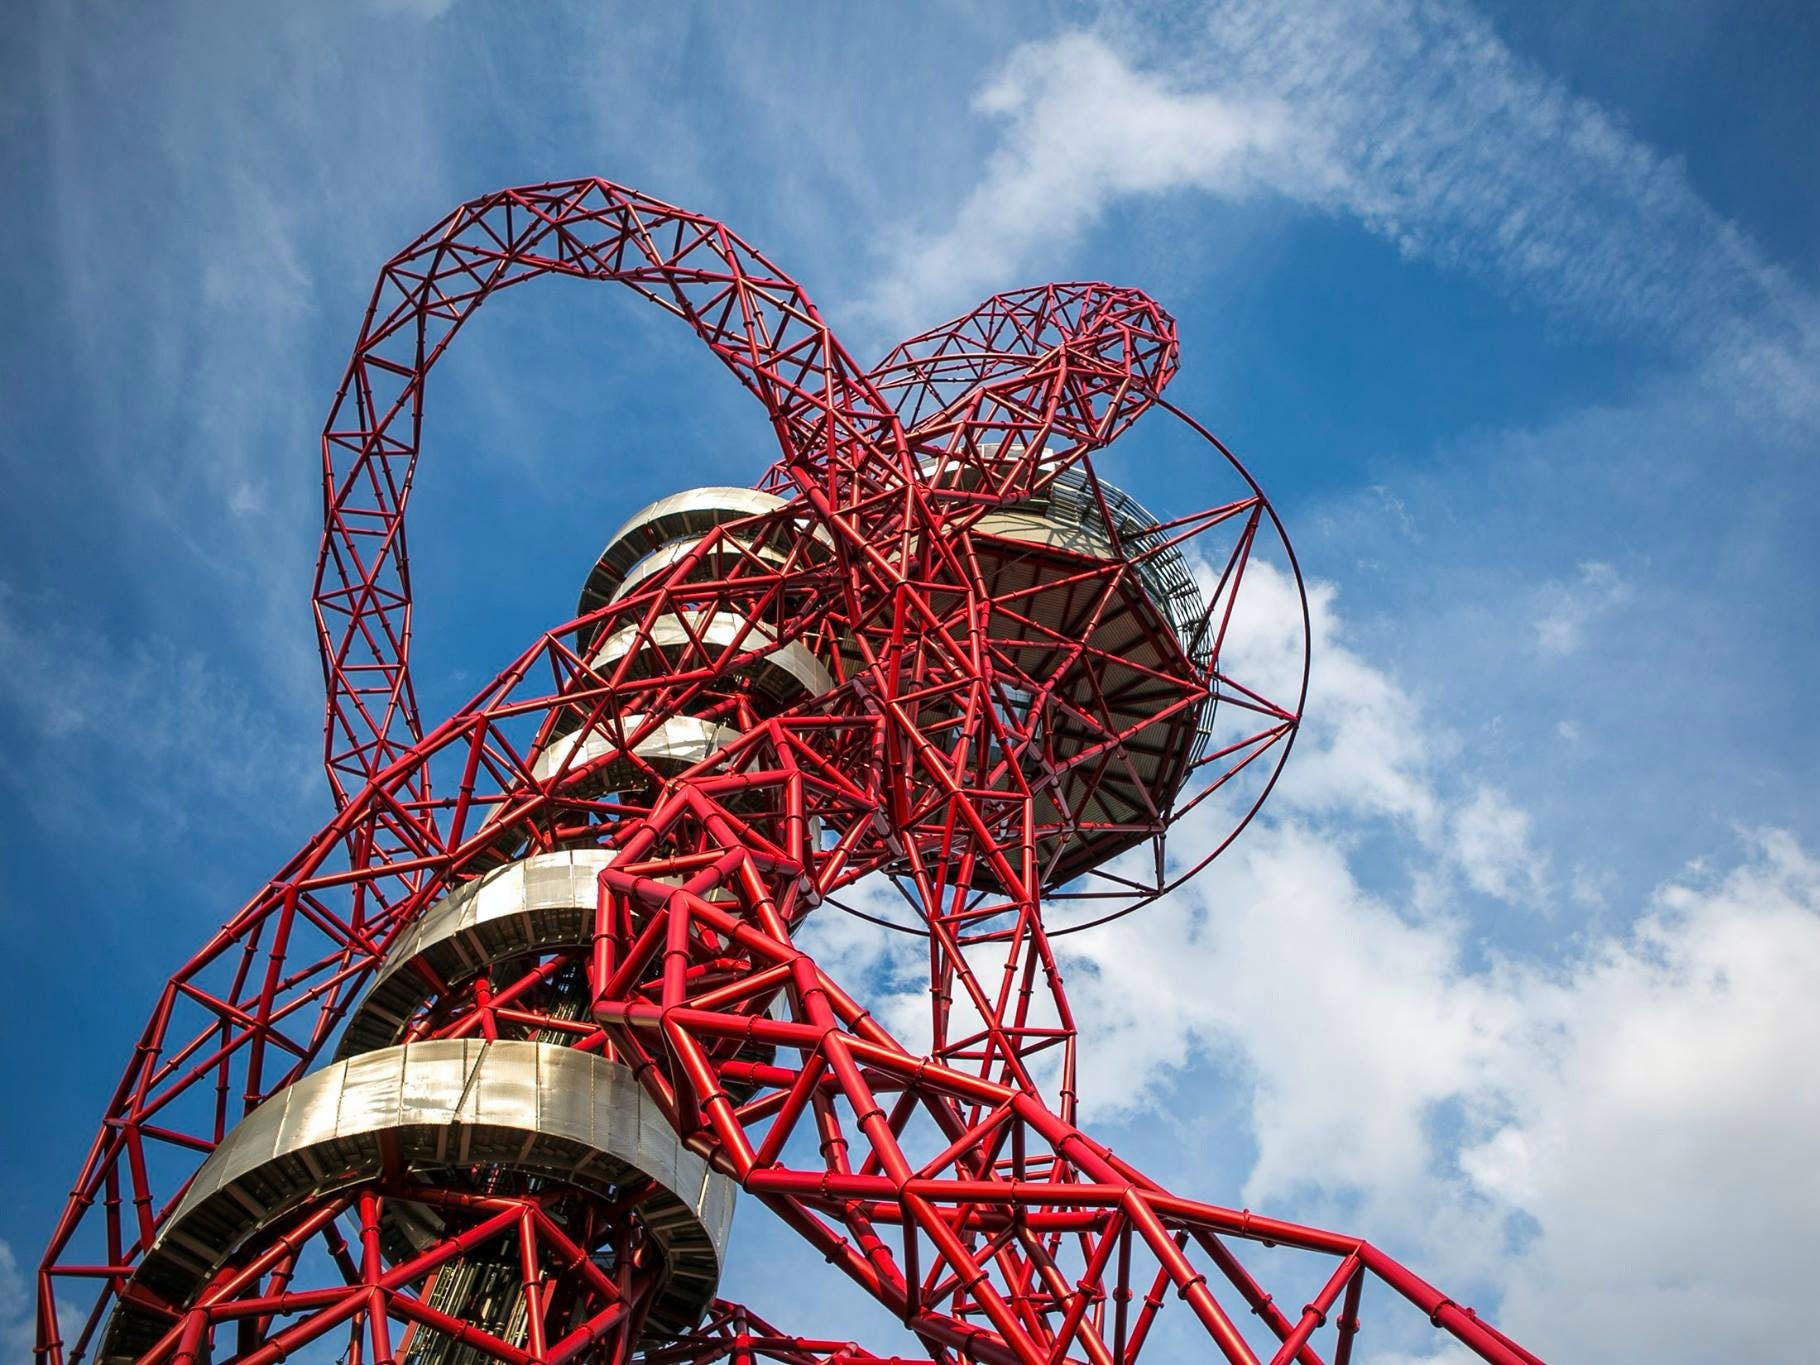 arcelormittal orbit & the slide option-2